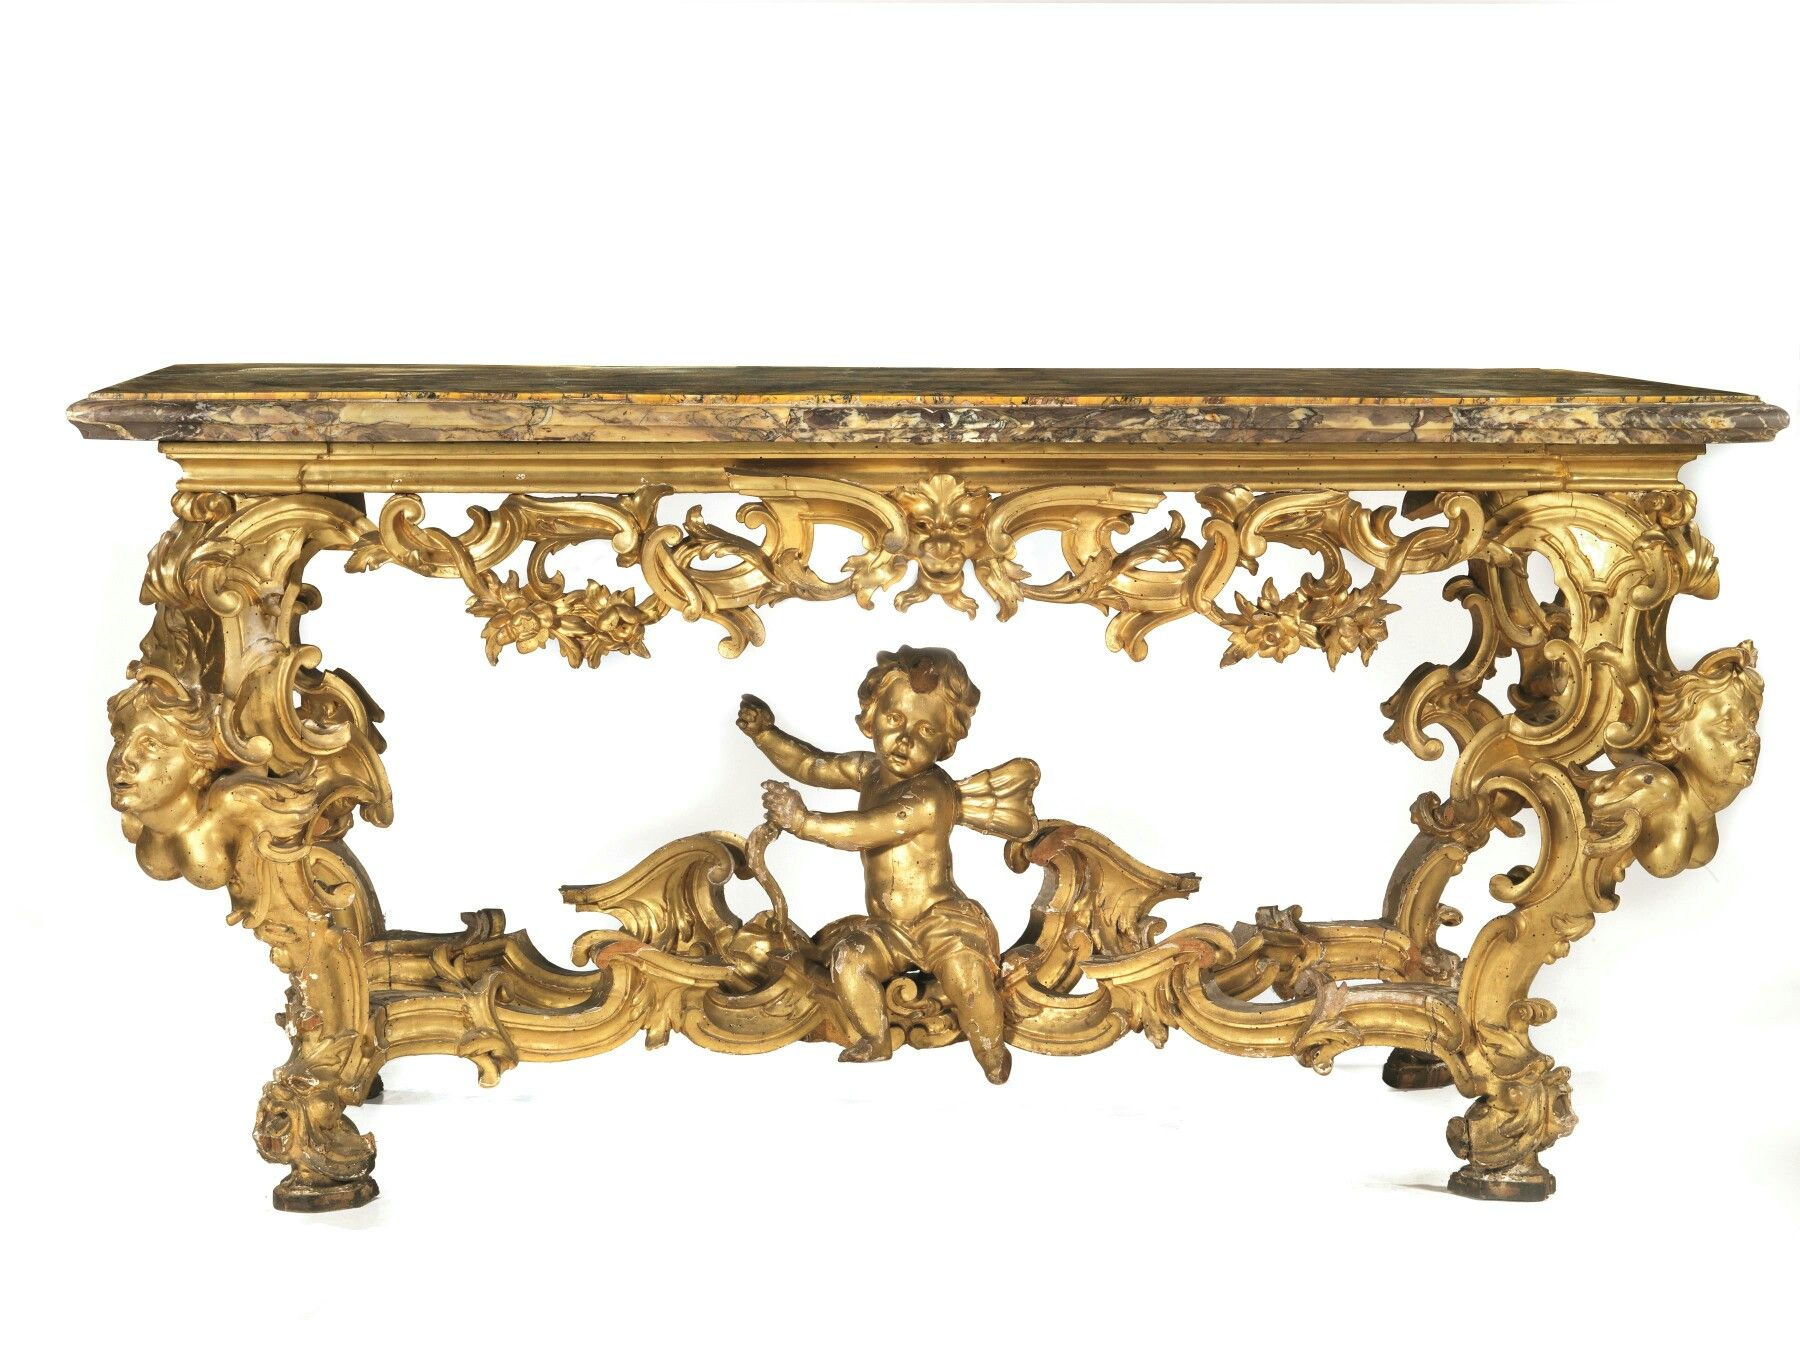 Console tuscany th century booked in carved and golden wood